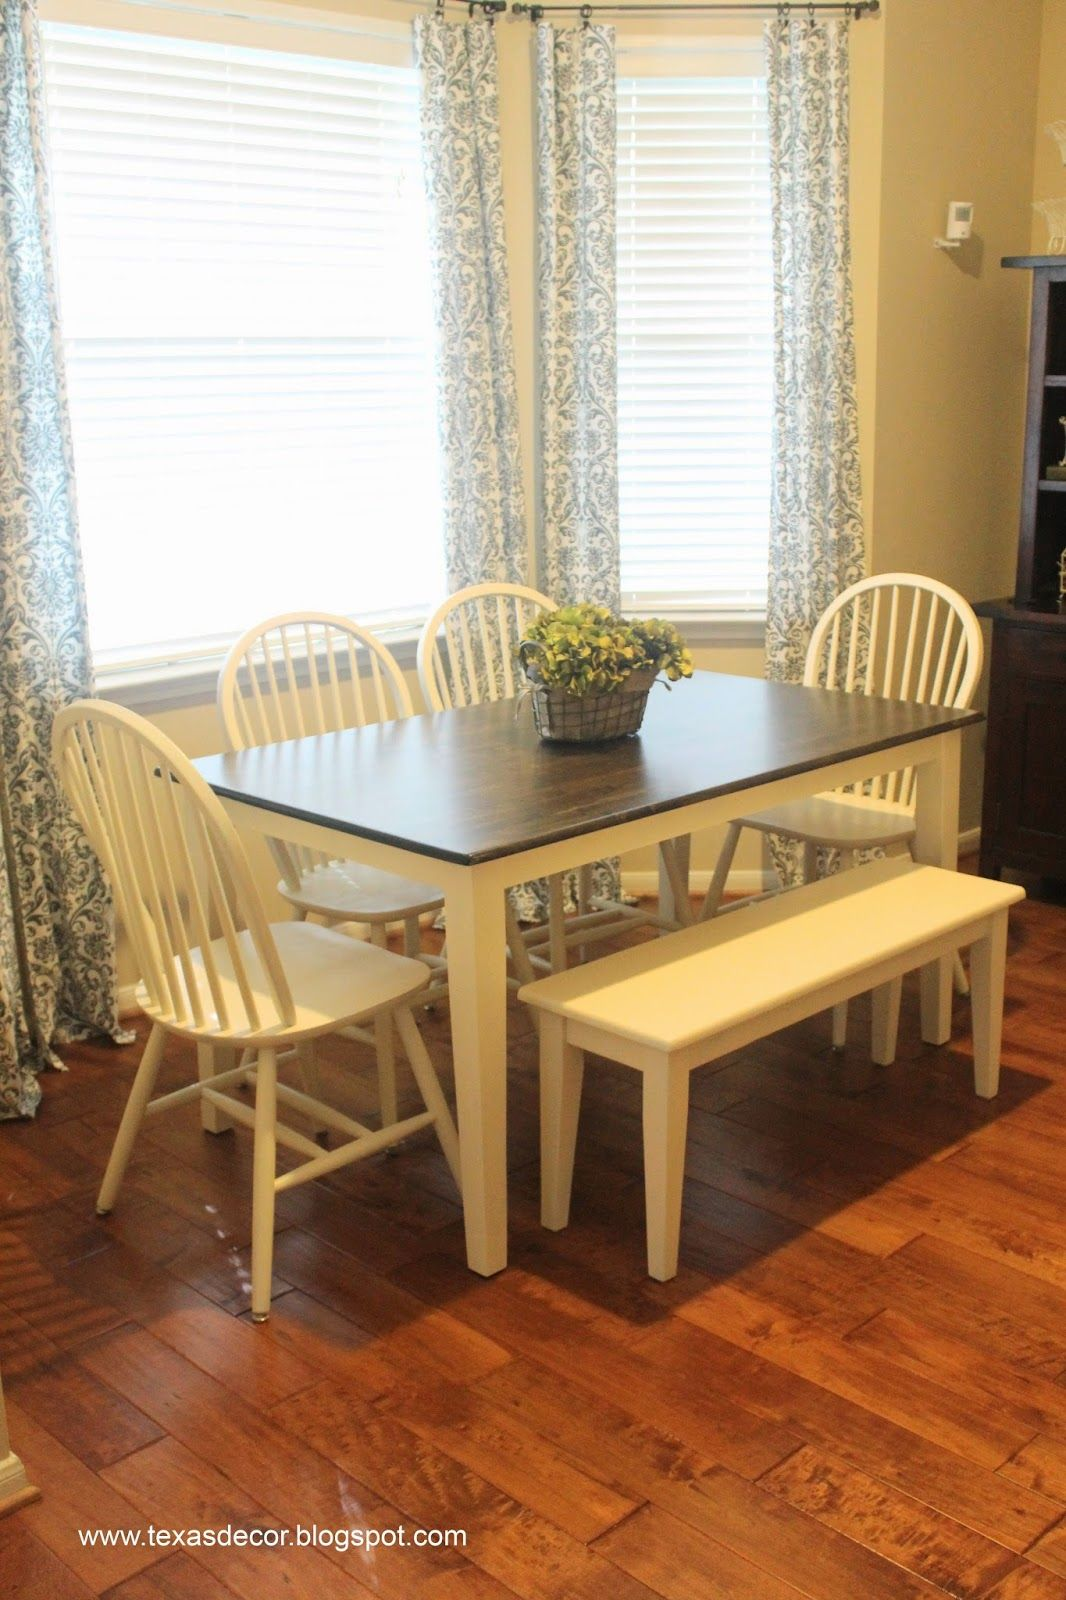 texas decor painted and stained kitchen table a tutorial